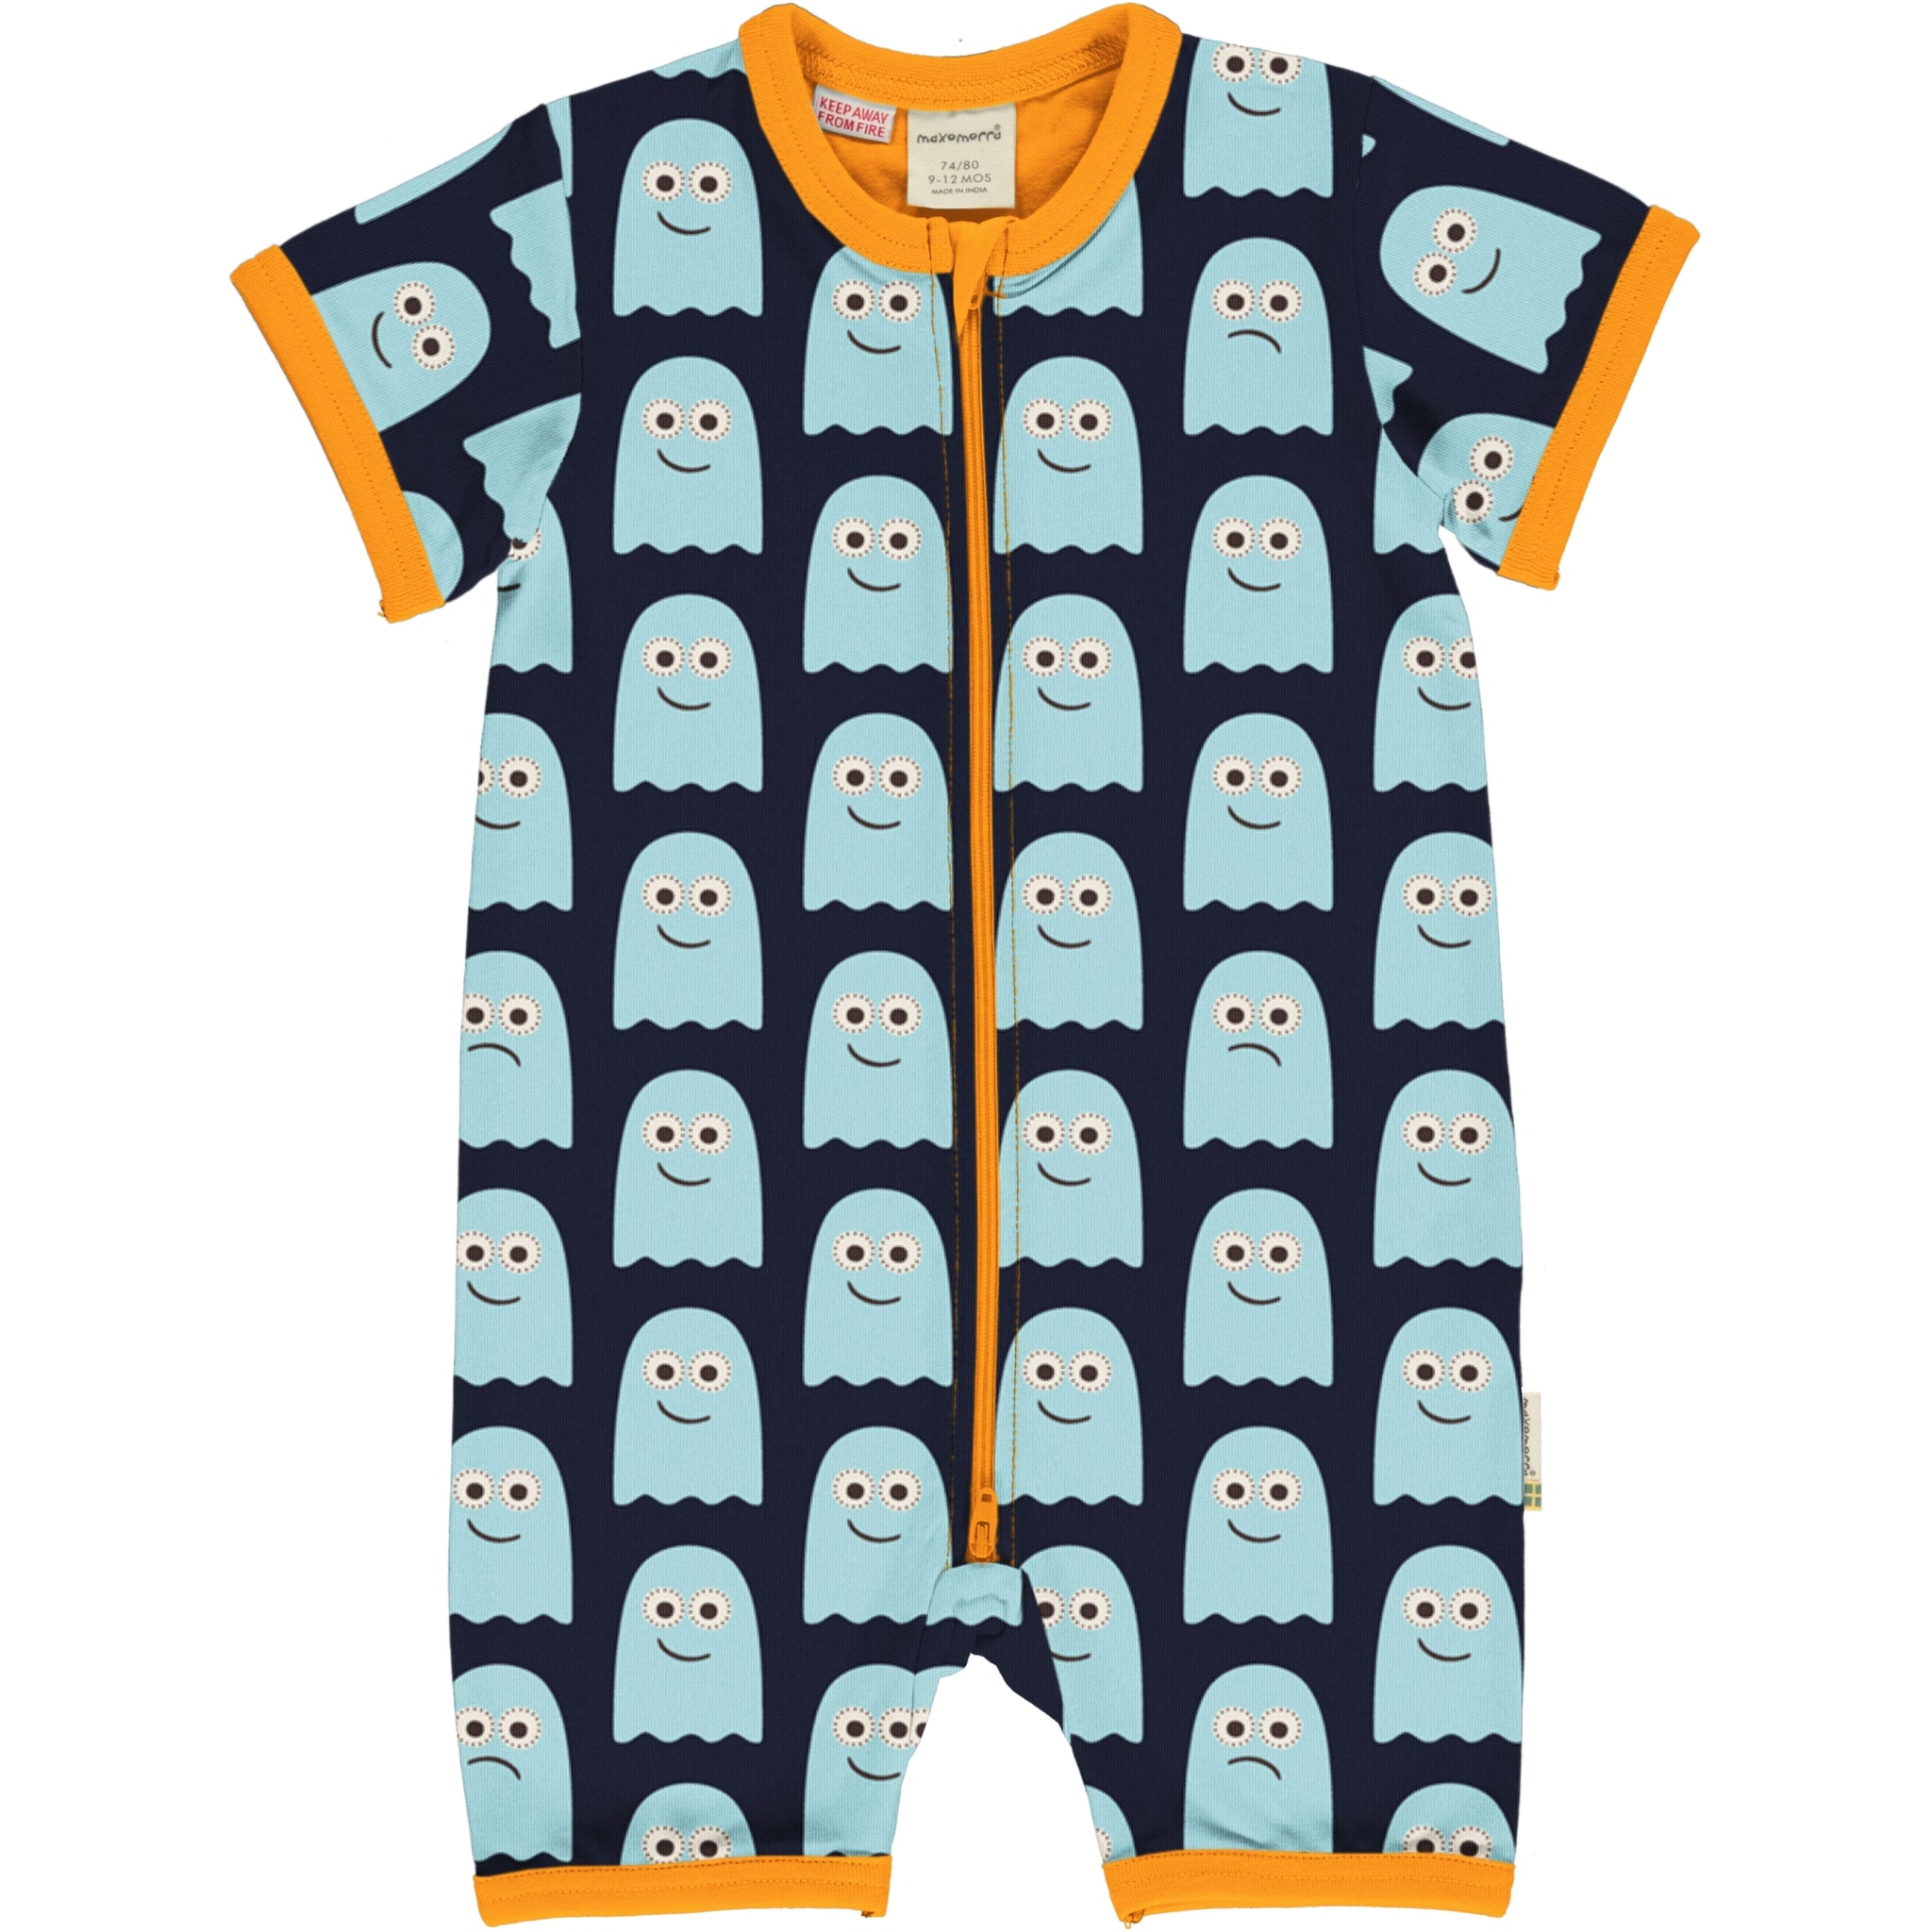 Maxomorra Classics Ghosts Short Romper Suit